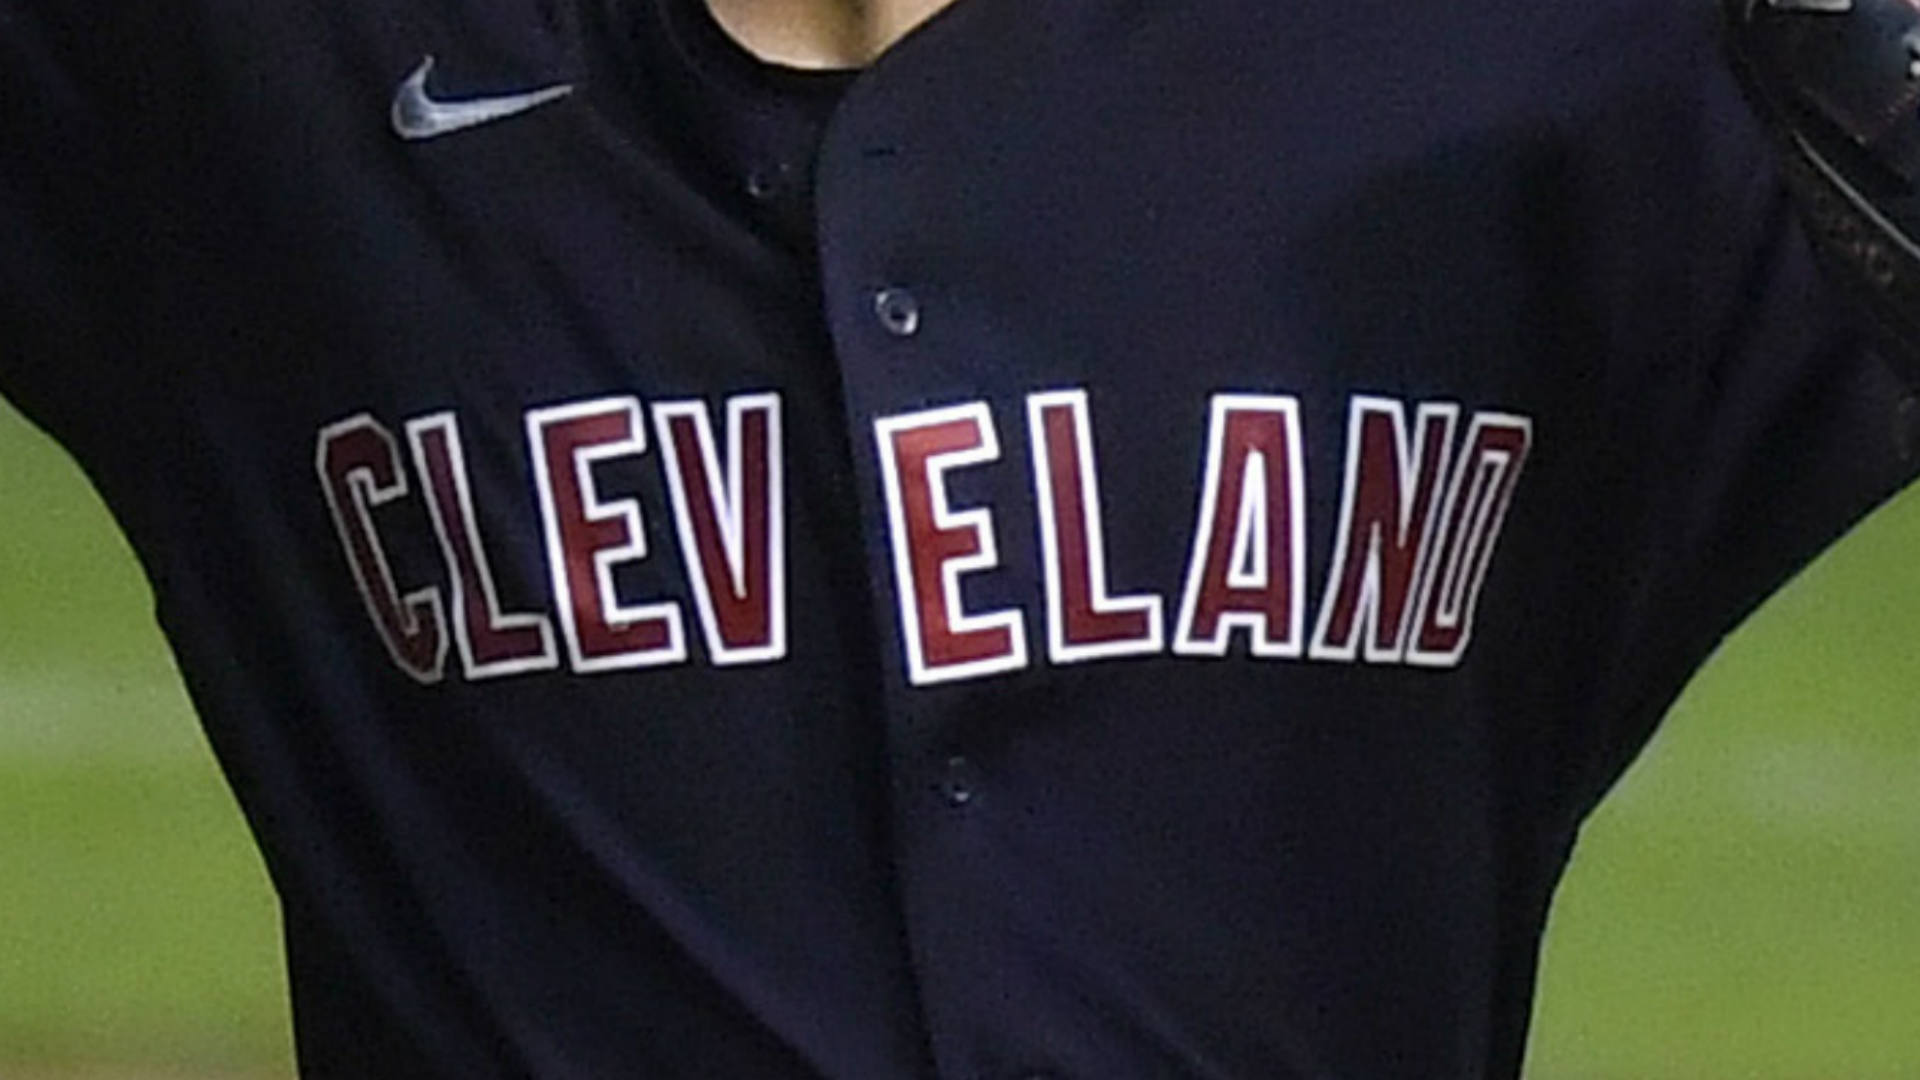 What is the new name of the Cleveland Indians?  New baseball team name revealed